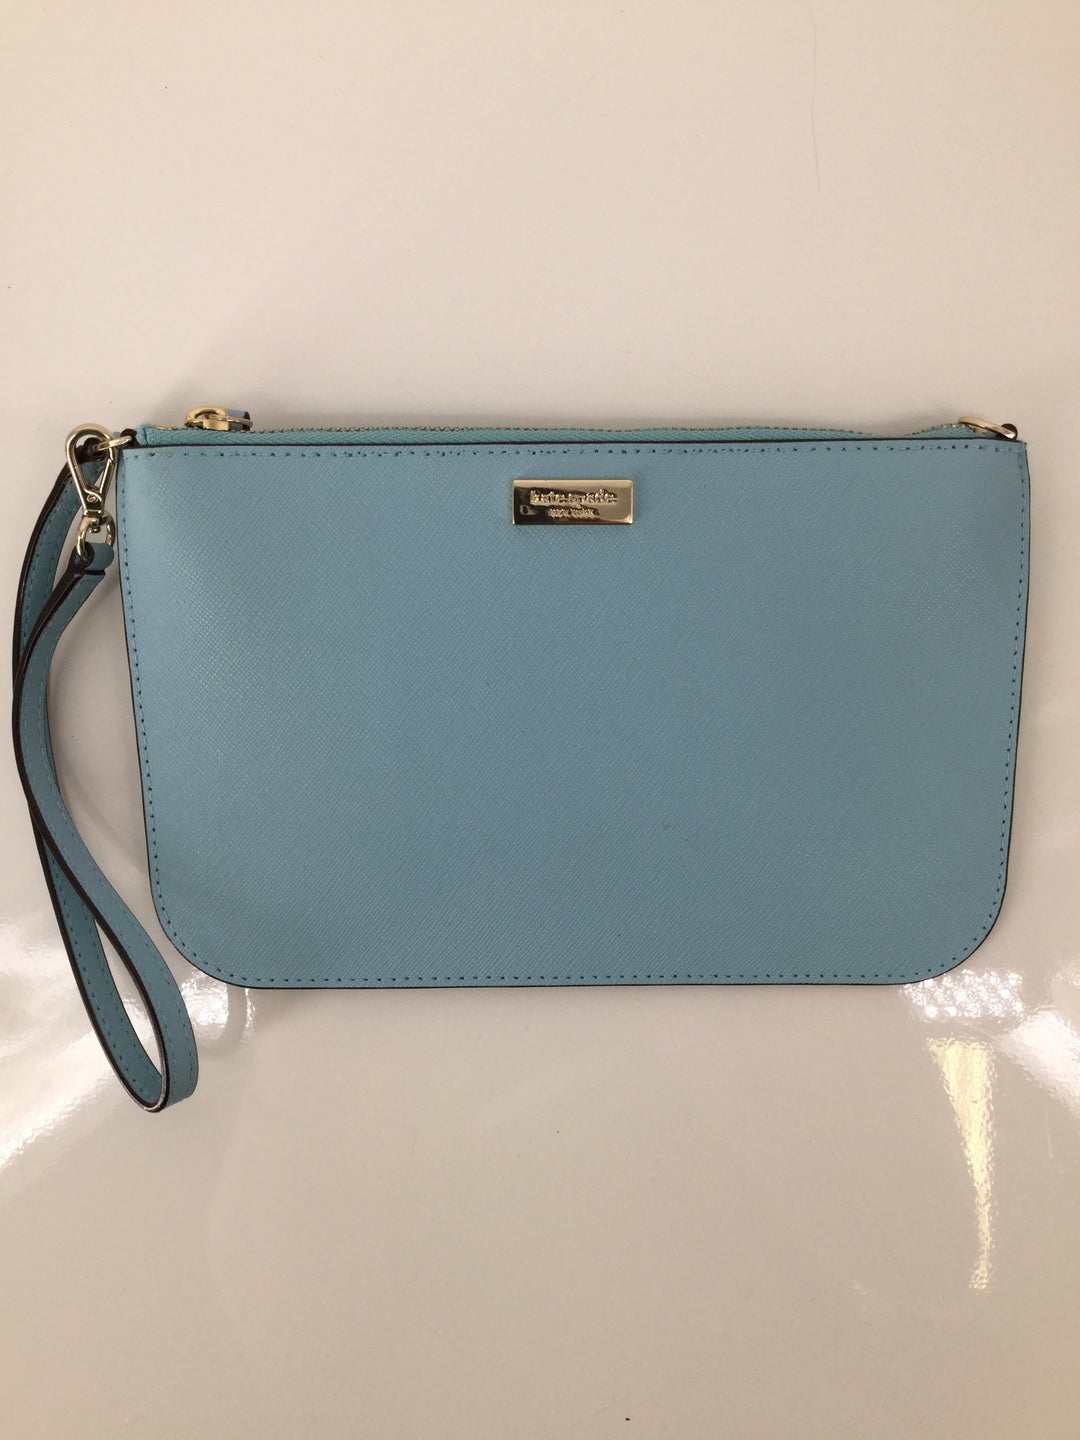 Kate Spade Wristlet, Blue, Medium - <P>NEED A SUPER CUTE WRISTLET TO CARRY AROUND FOR SPRING AND SUMMER? WE'VE GOT YOU COVERED. KATE SPADE DESIGNER WRISTLET FOR ONLY $38. HAS CARDHOLDERS ON THE INSIDE. MINOR CONDITION ON BACK OF WRISTLET, (SEE PHOTOS).</P>